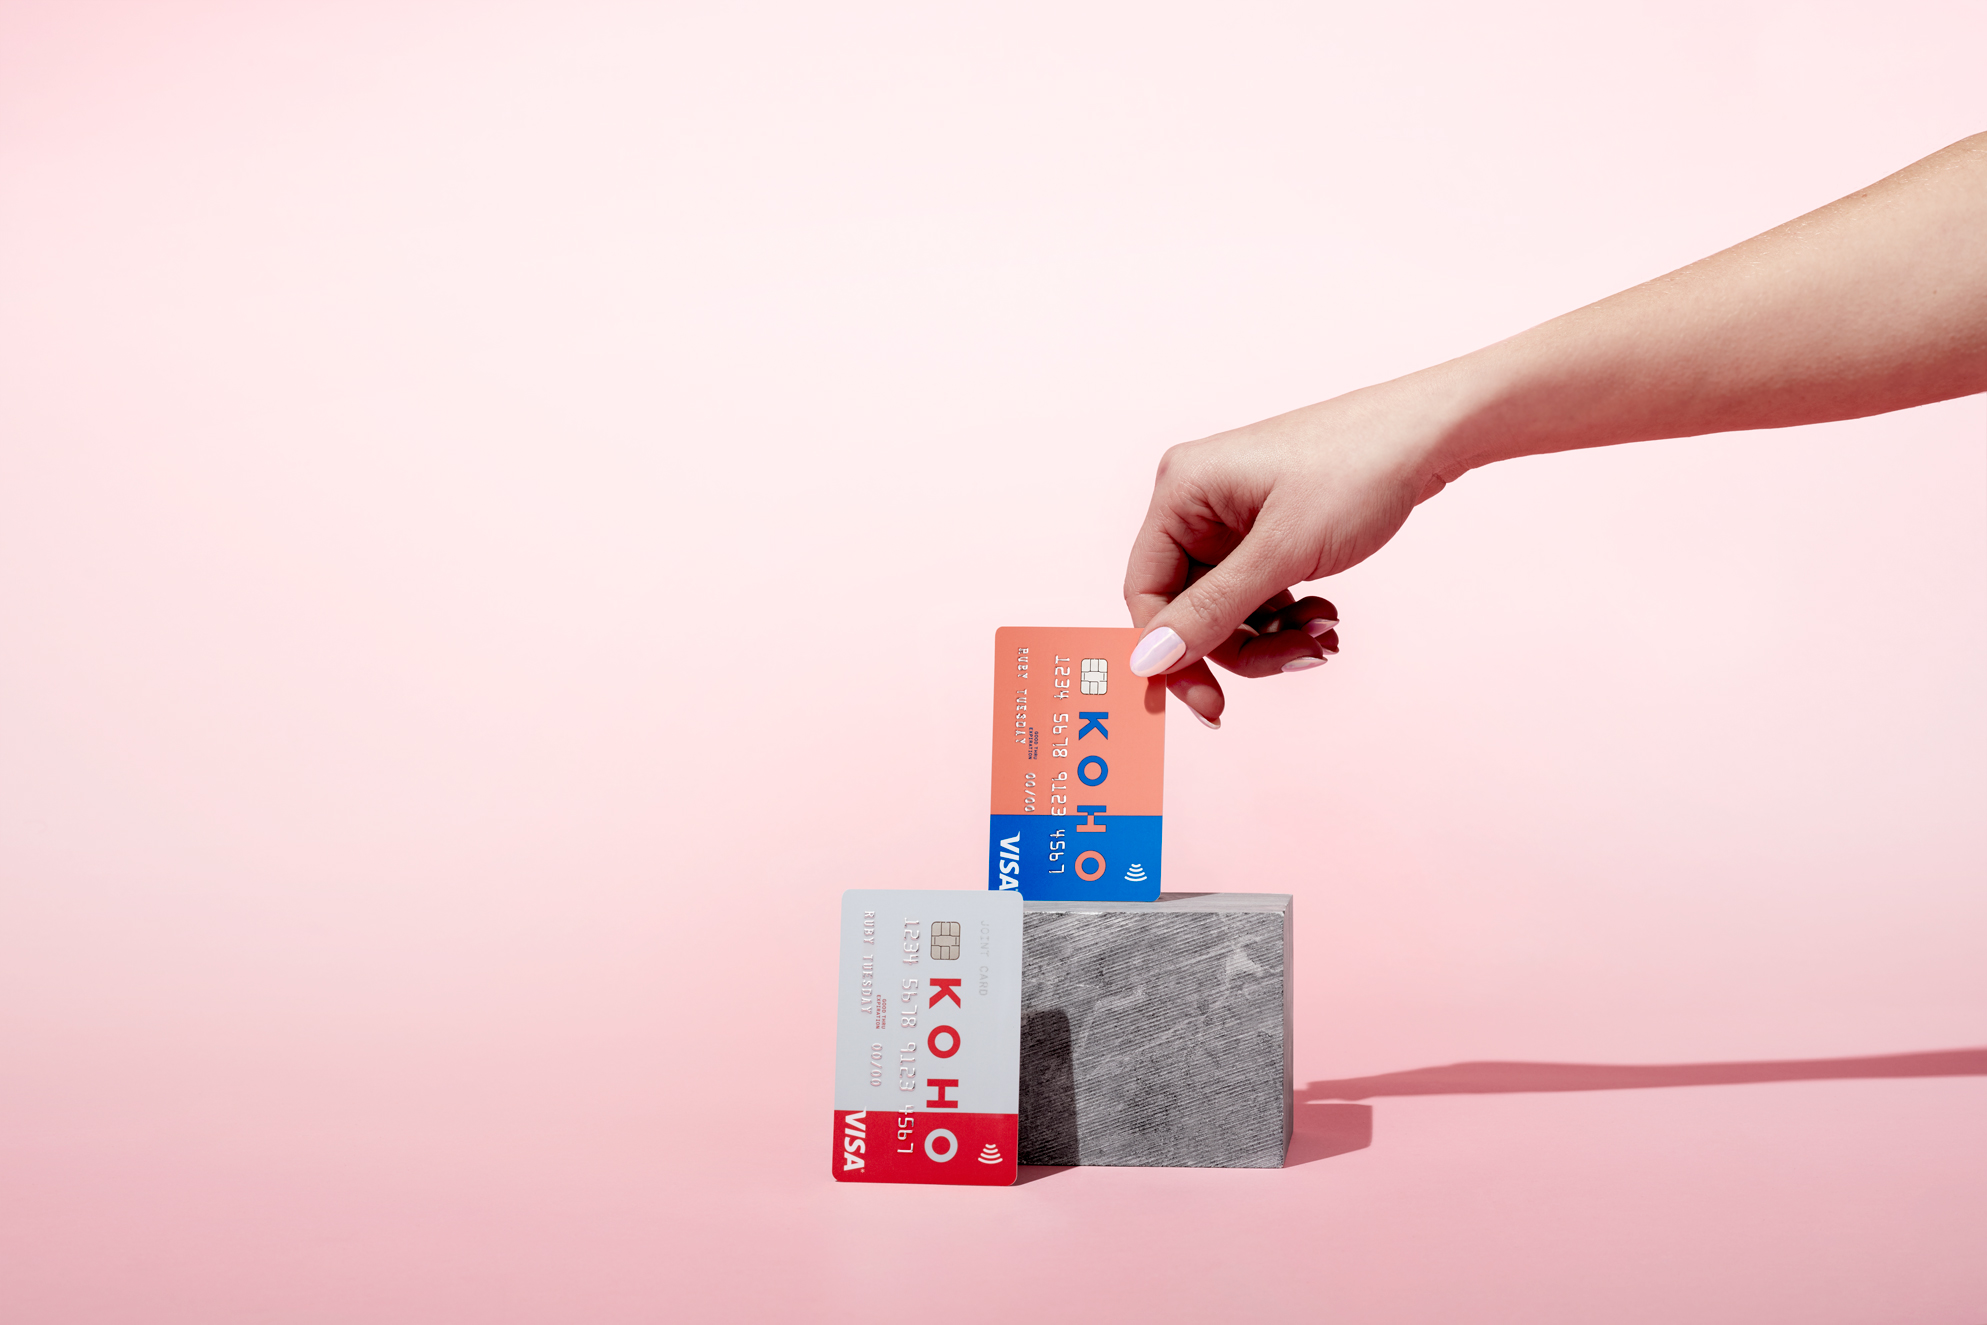 Koho Partnering With Hyr To Offer Early Access To Paycheques And Government Support Betakit